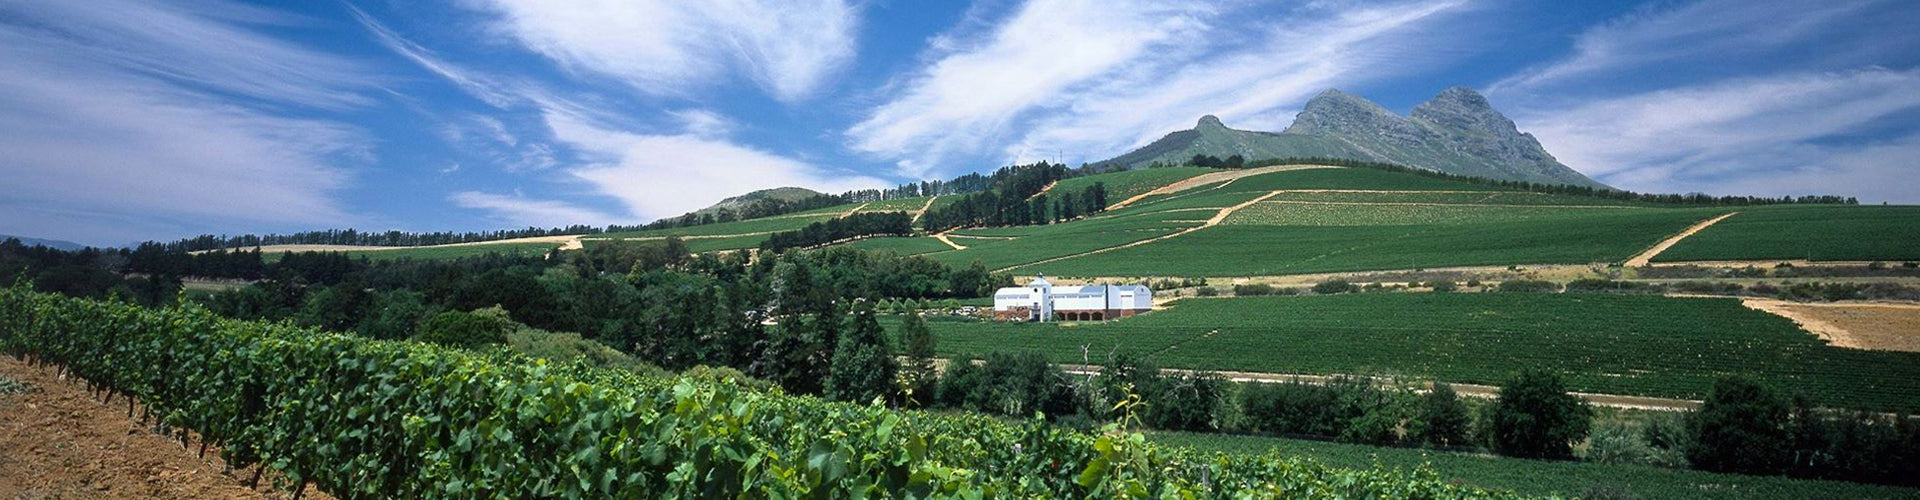 Laibach Wines in the Simonsberg region of Stellenbosch